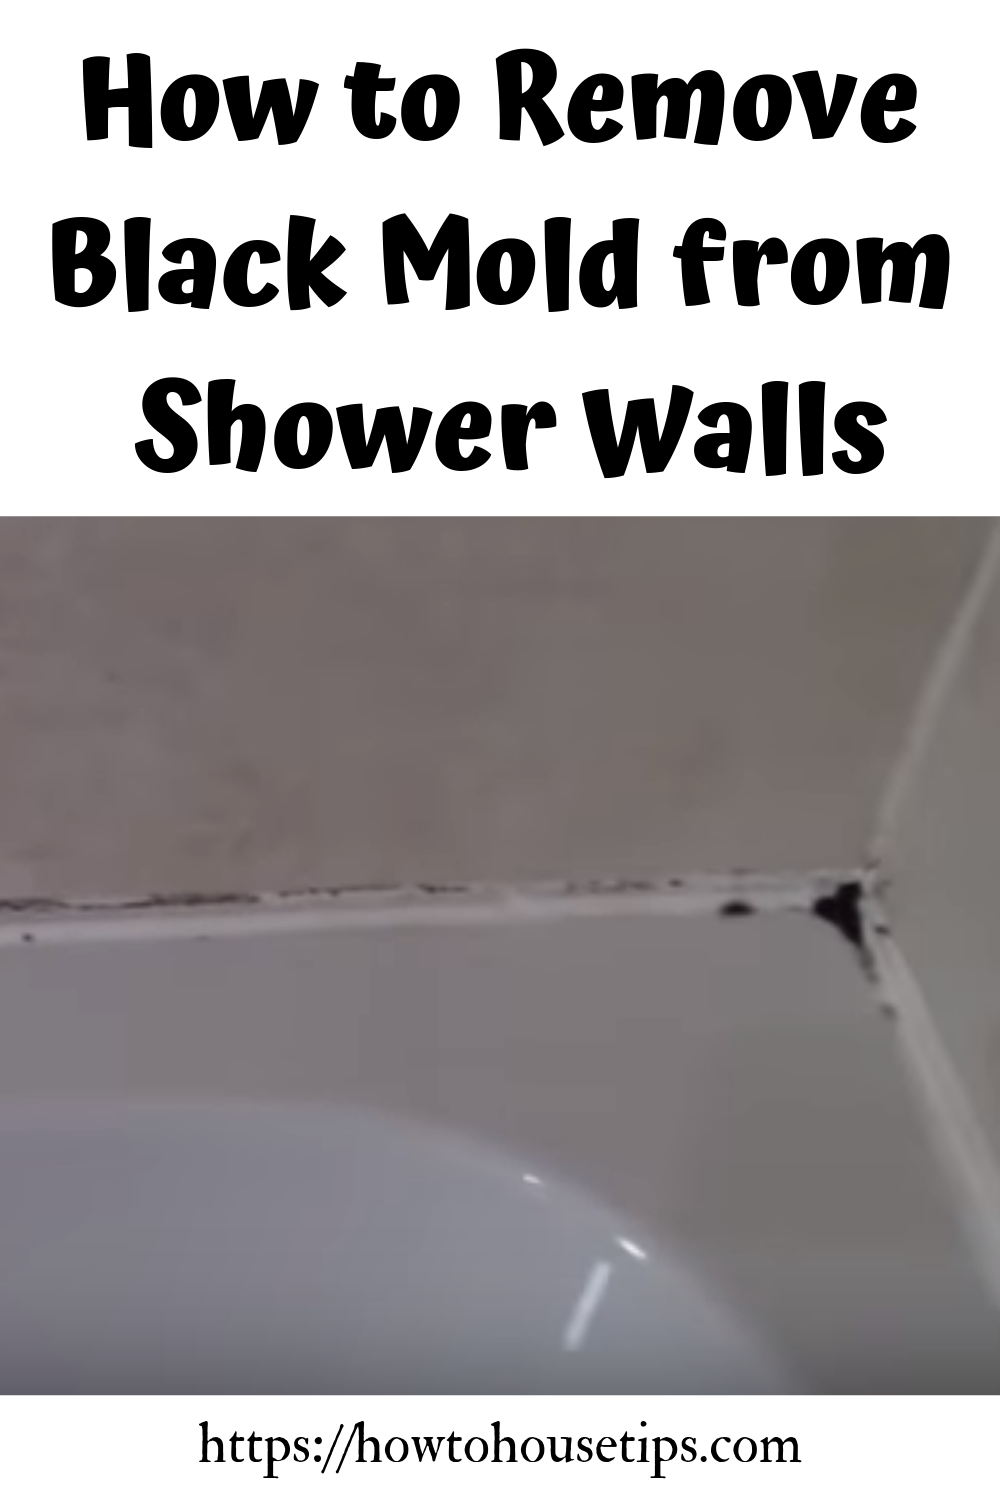 How to Remove Black Mold from Shower Walls and Caulking